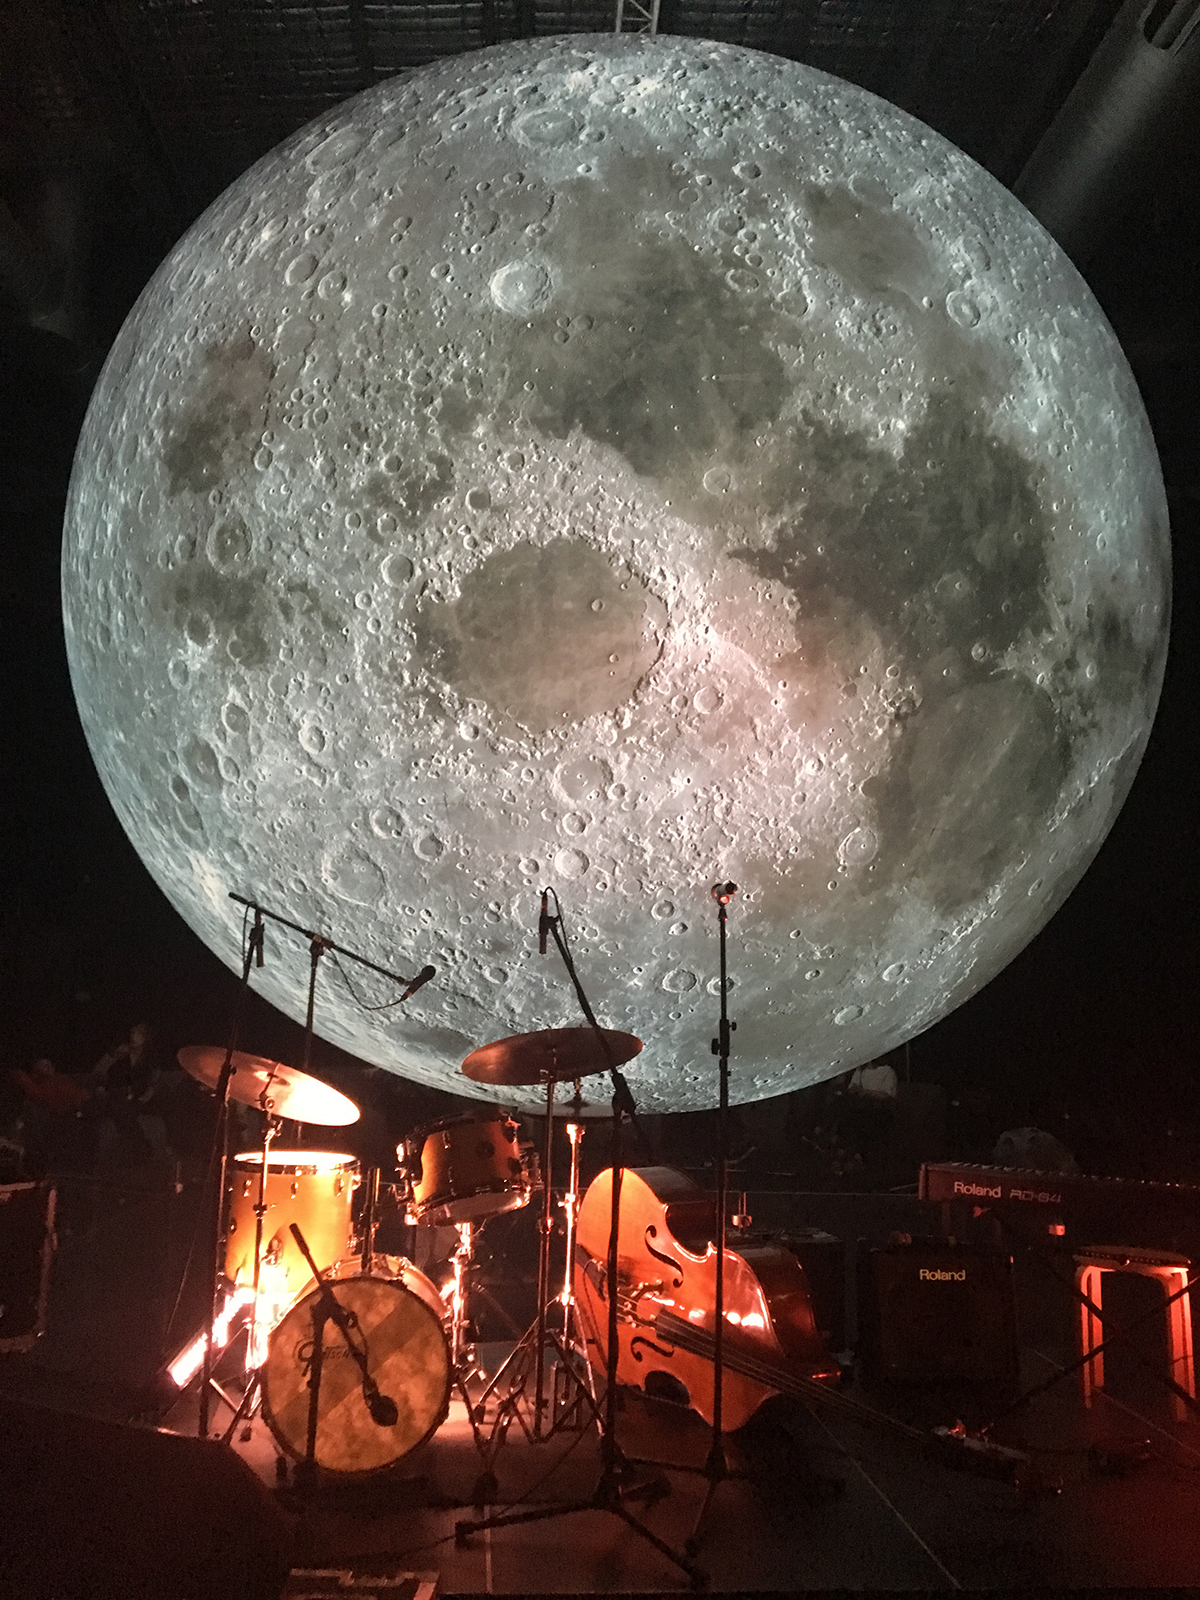 moon sculpture in light with band equipment in red light beneath